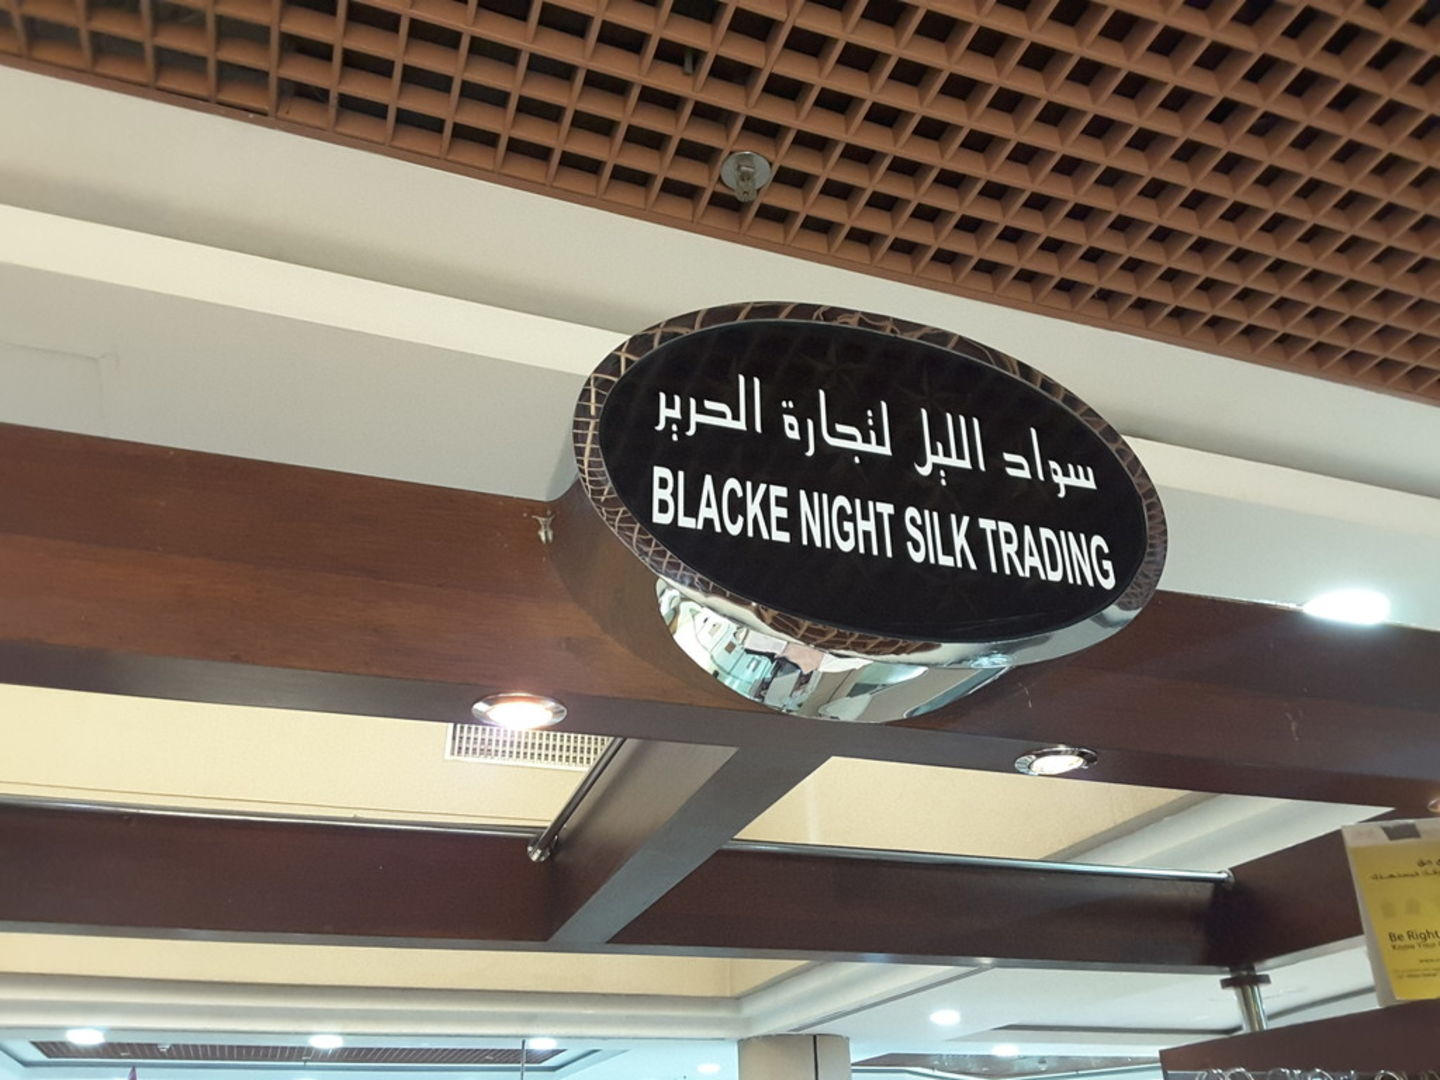 HiDubai-business-blacke-night-silk-trading-shopping-fashion-accessories-al-rashidiya-dubai-2